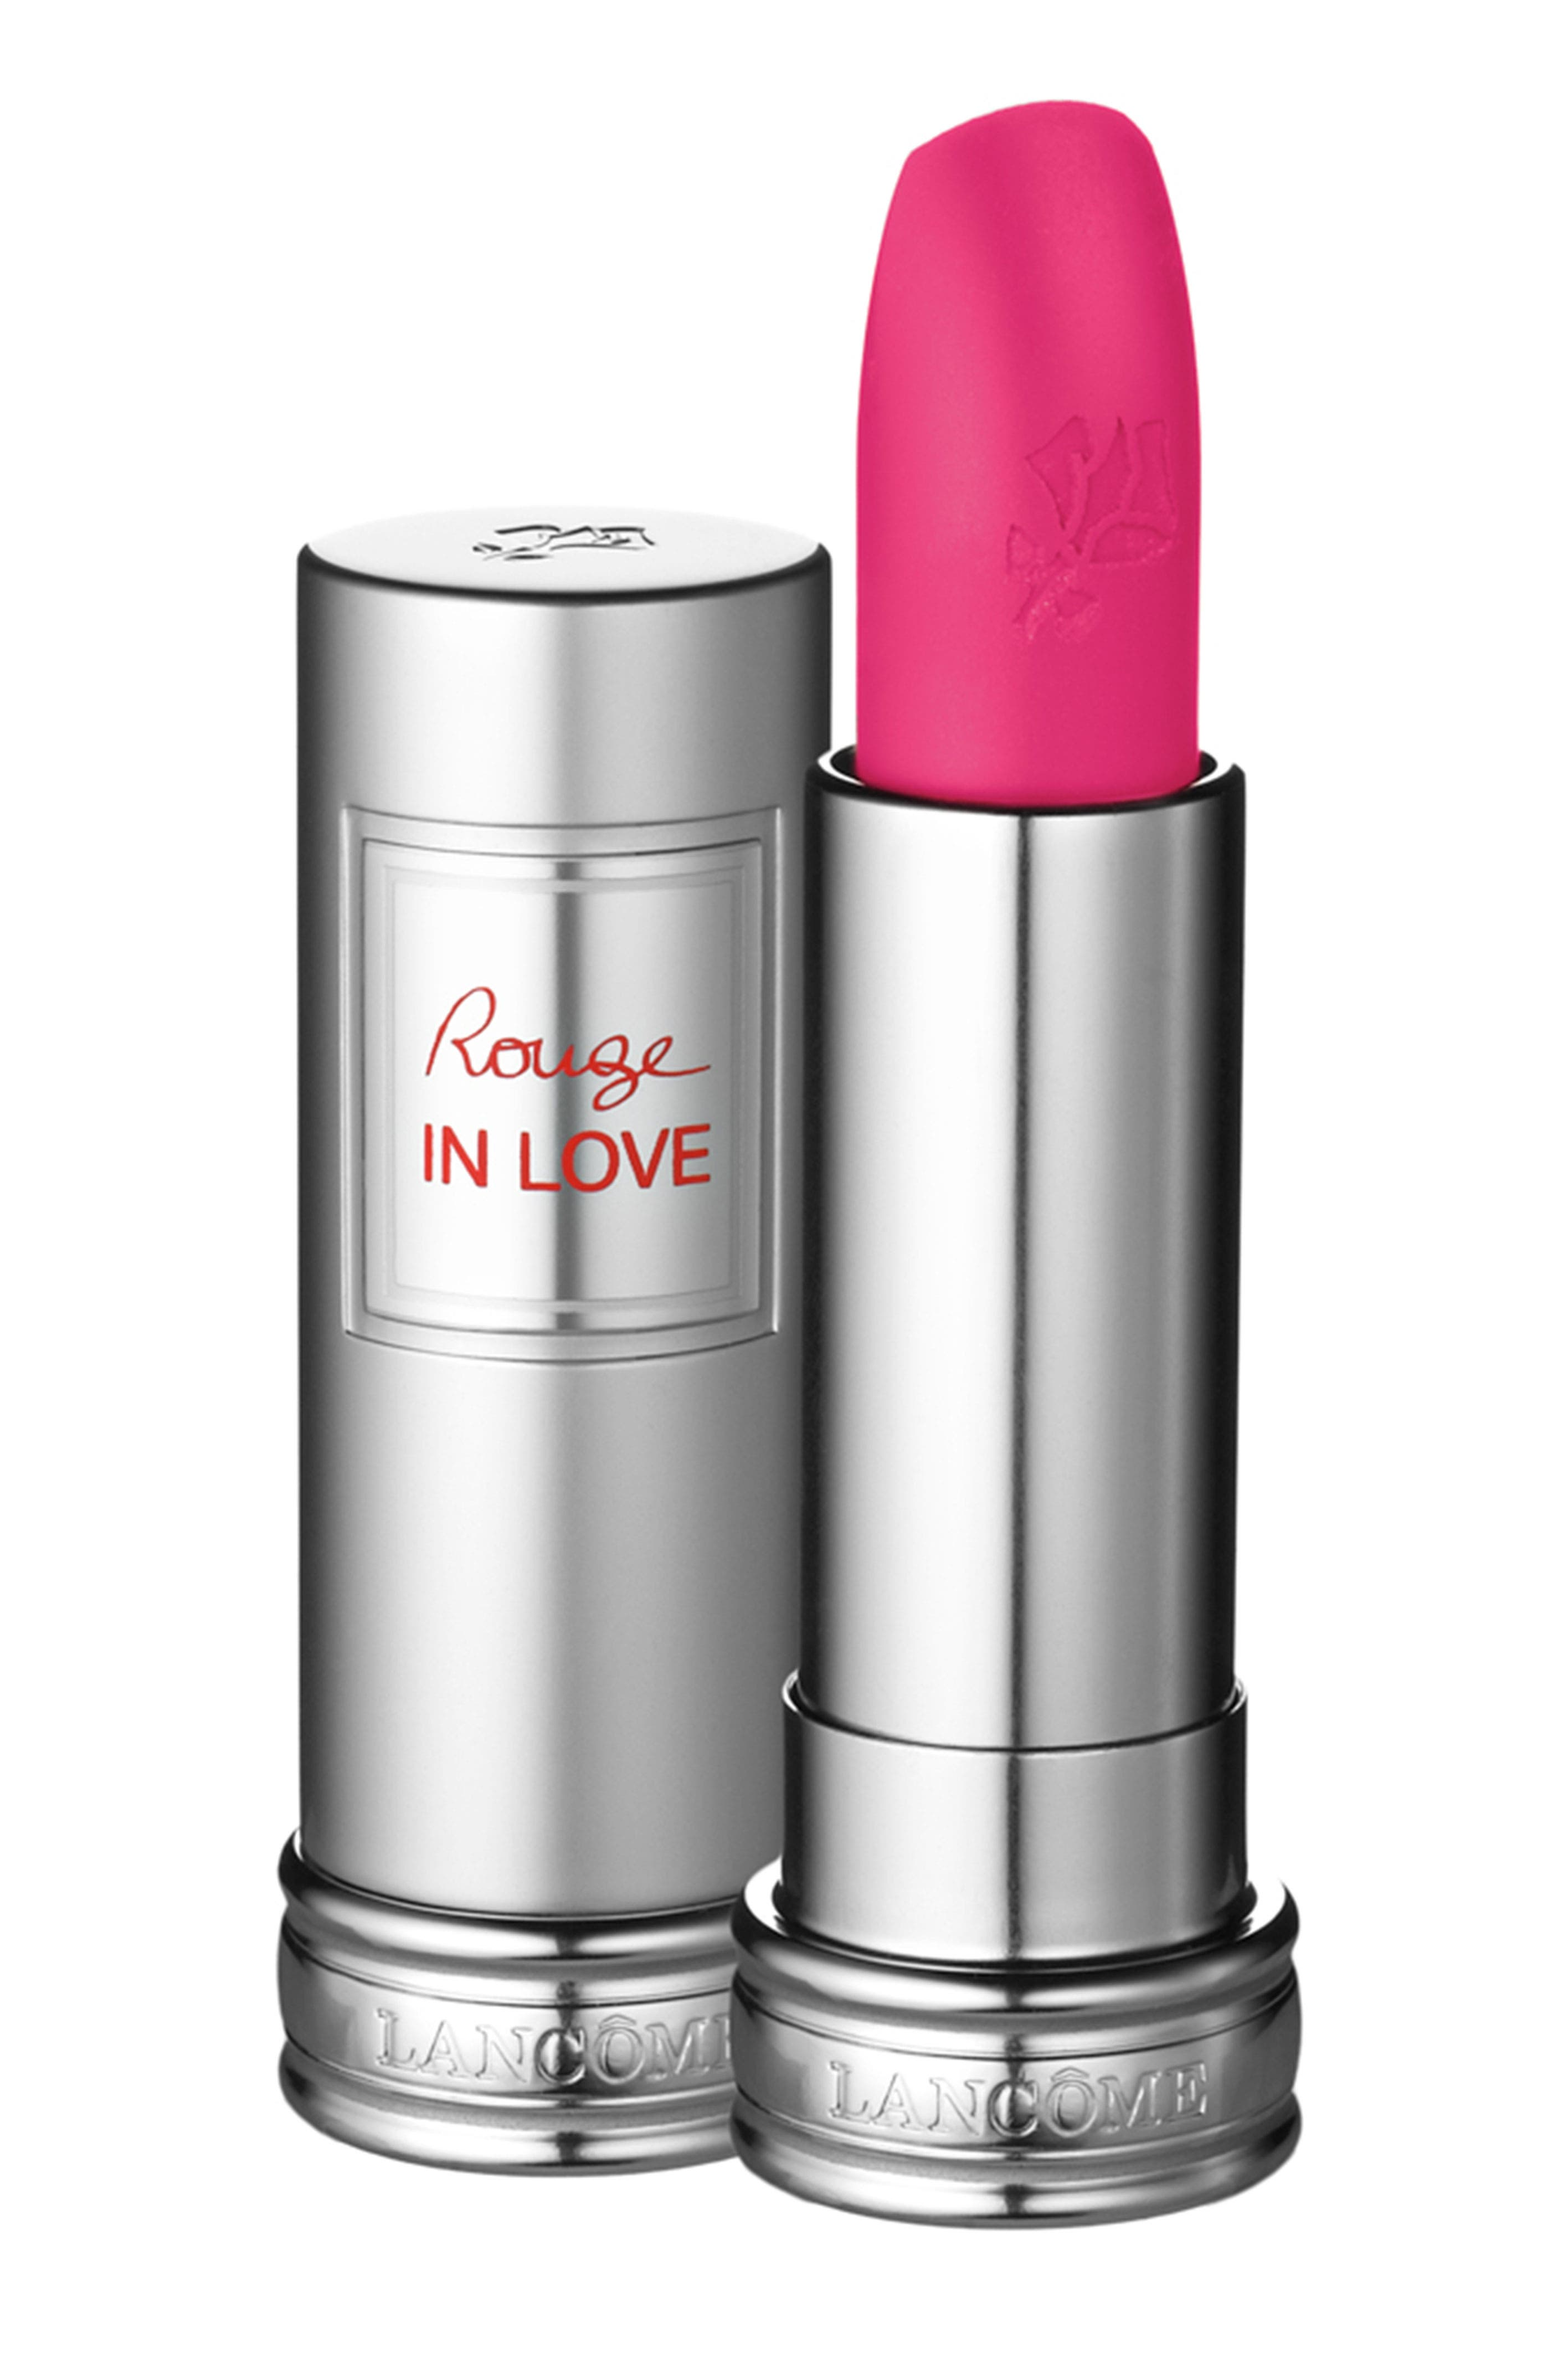 Rouge in Love Rose Me, Rose Me Not by LANCÔME